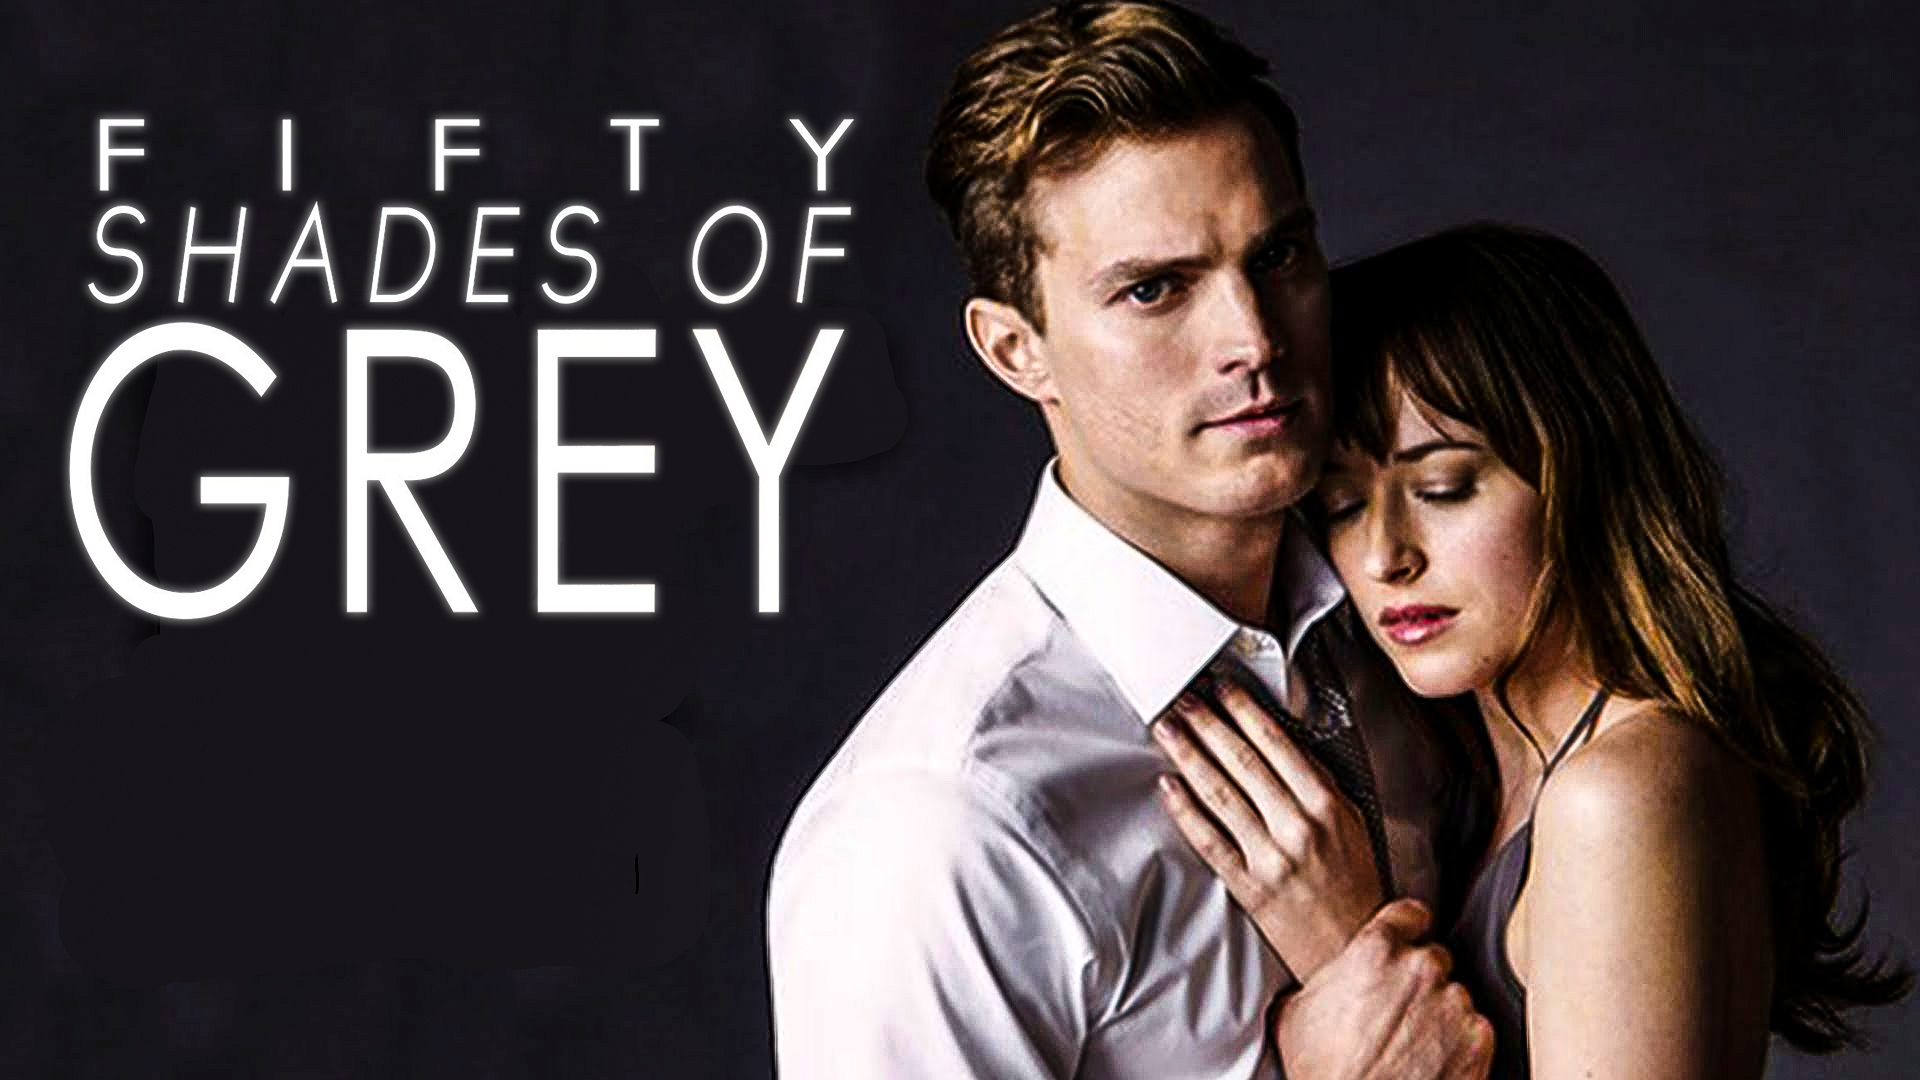 Fifty shades of grey radio bucuresti fm radio muzica for Fifth shade of grey